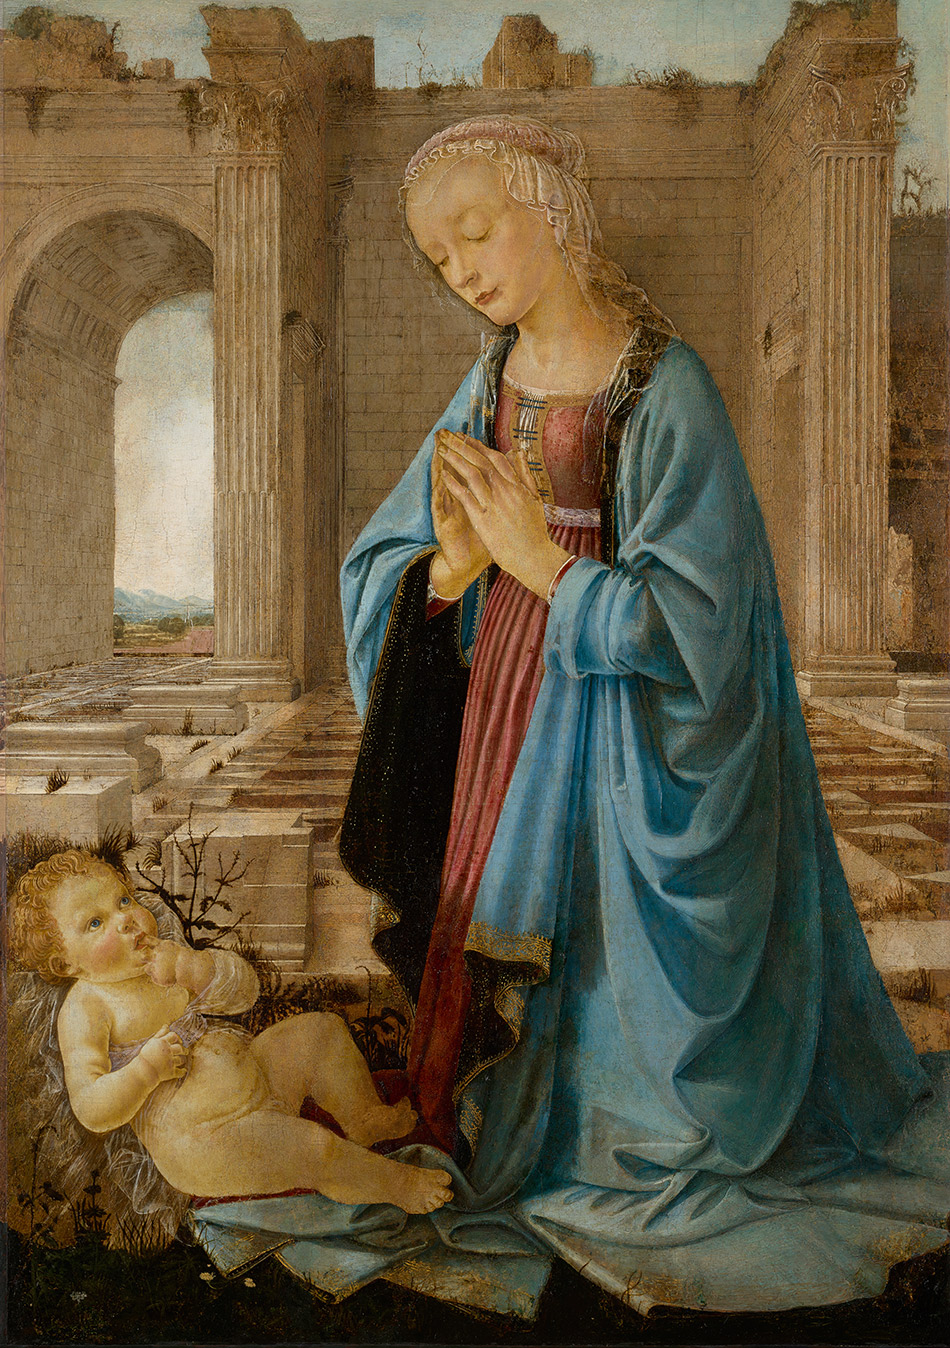 Attributed to Andrea del Verrocchio; and Workshop